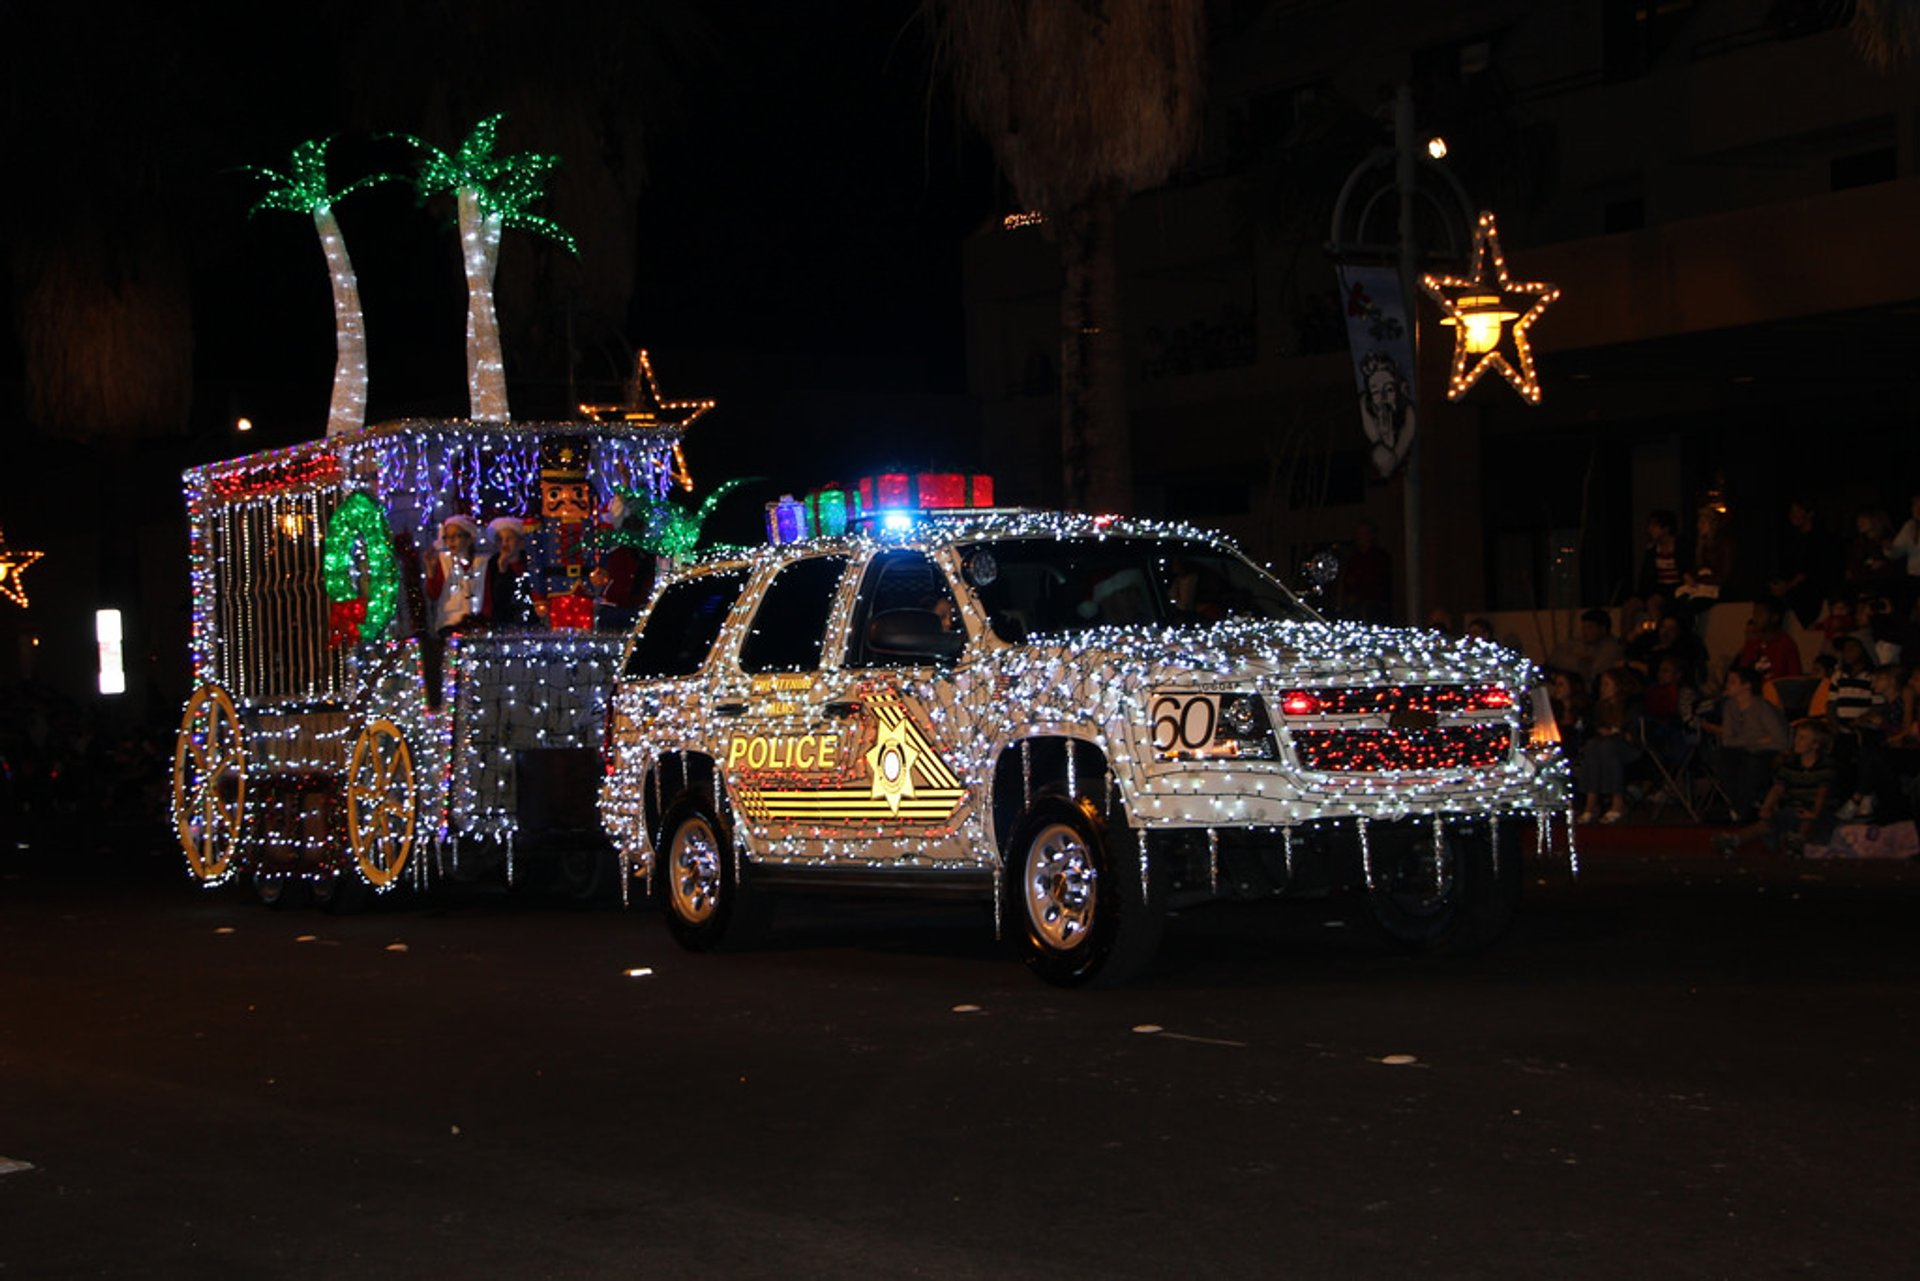 Palm Springs Festival of Lights Parade in California 2020 - Best Time